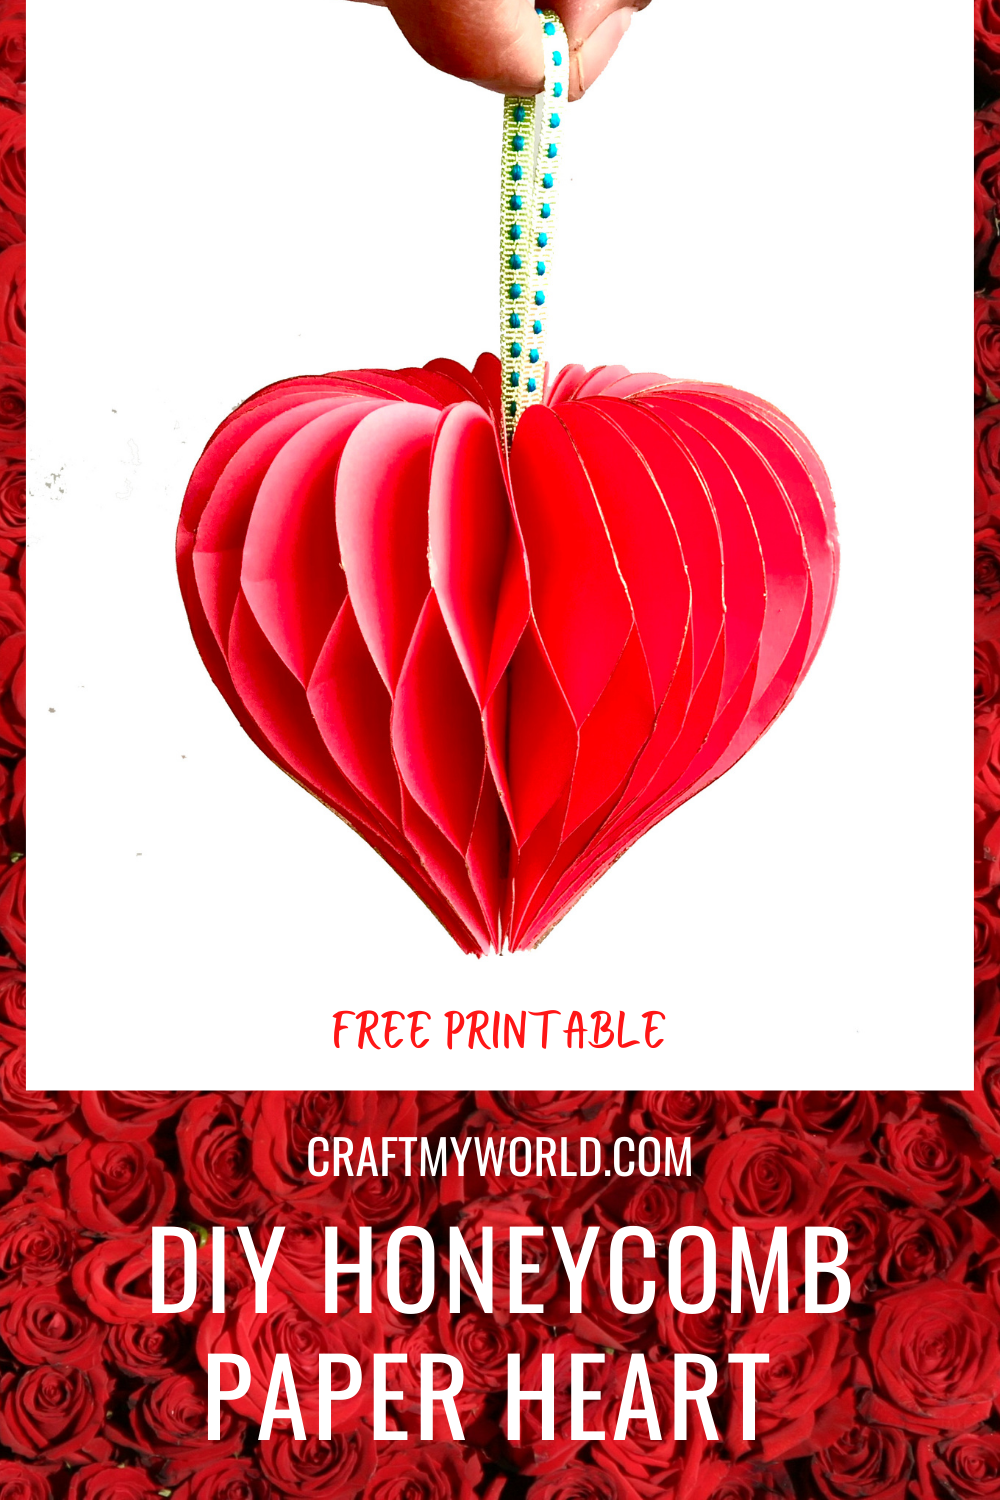 DIY Honeycomb Paper heart with free printable